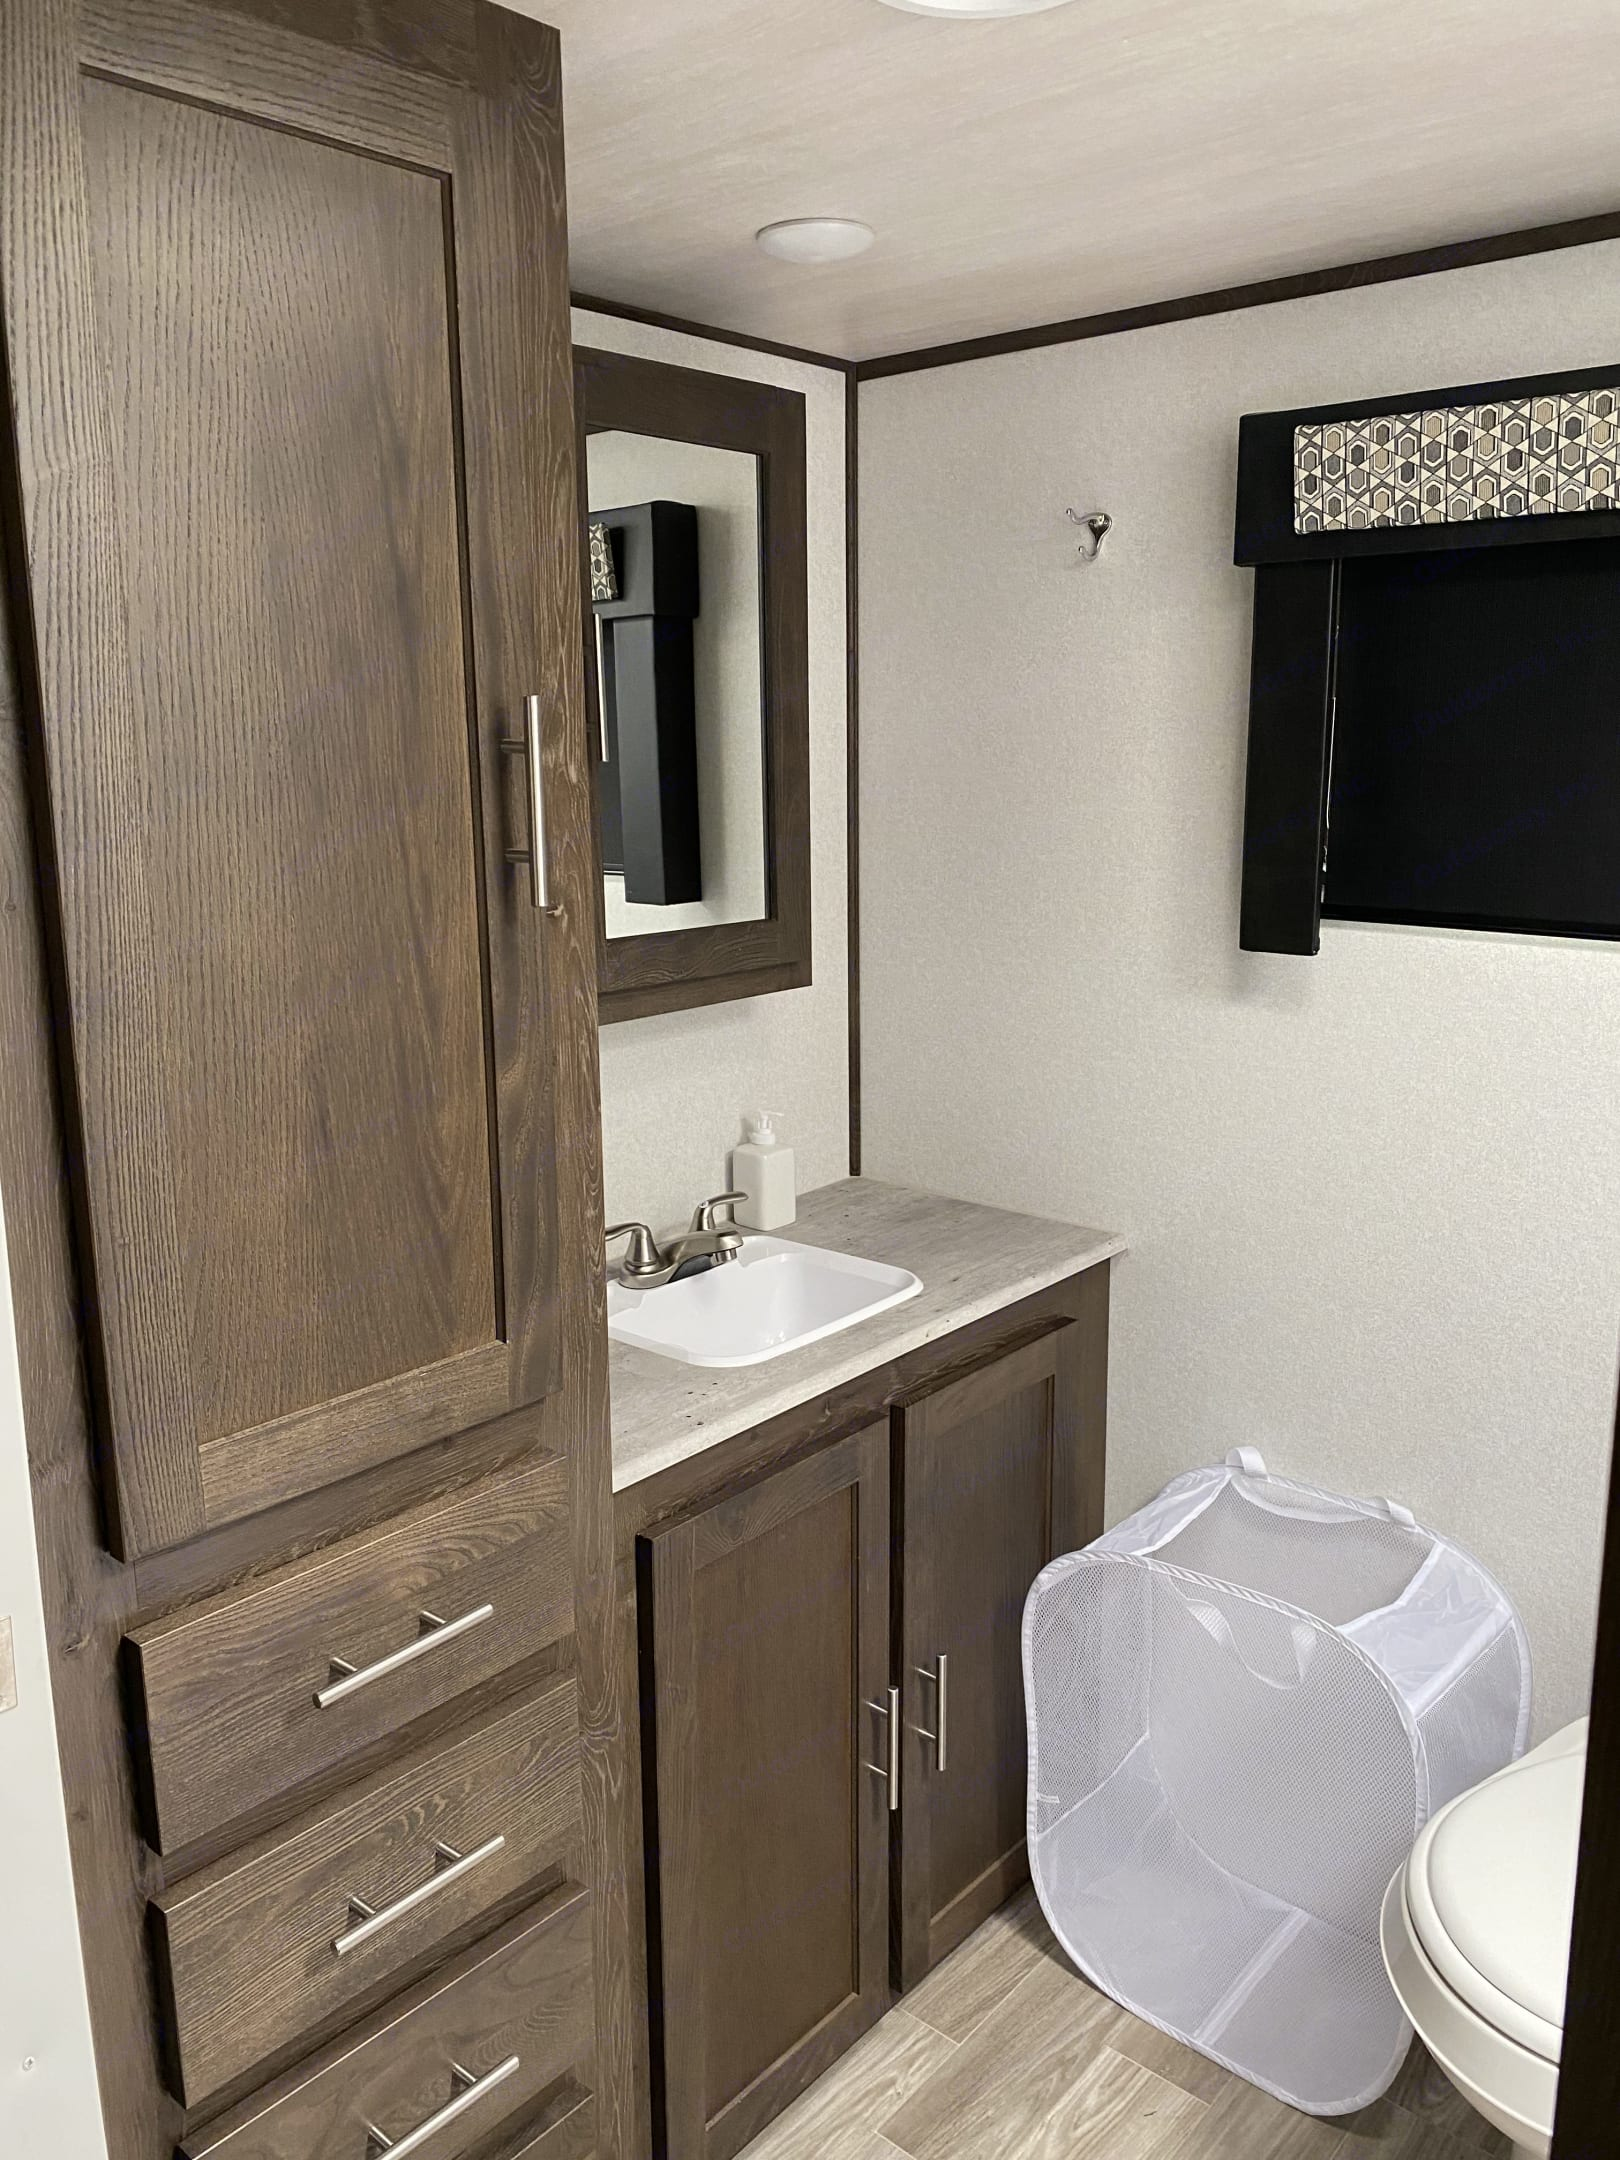 Bathroom vanity w/ rare counterspace and lot's of storage.  Plenty of floorspace to get ready for your day.. Forest River Salem Hemisphere 2020